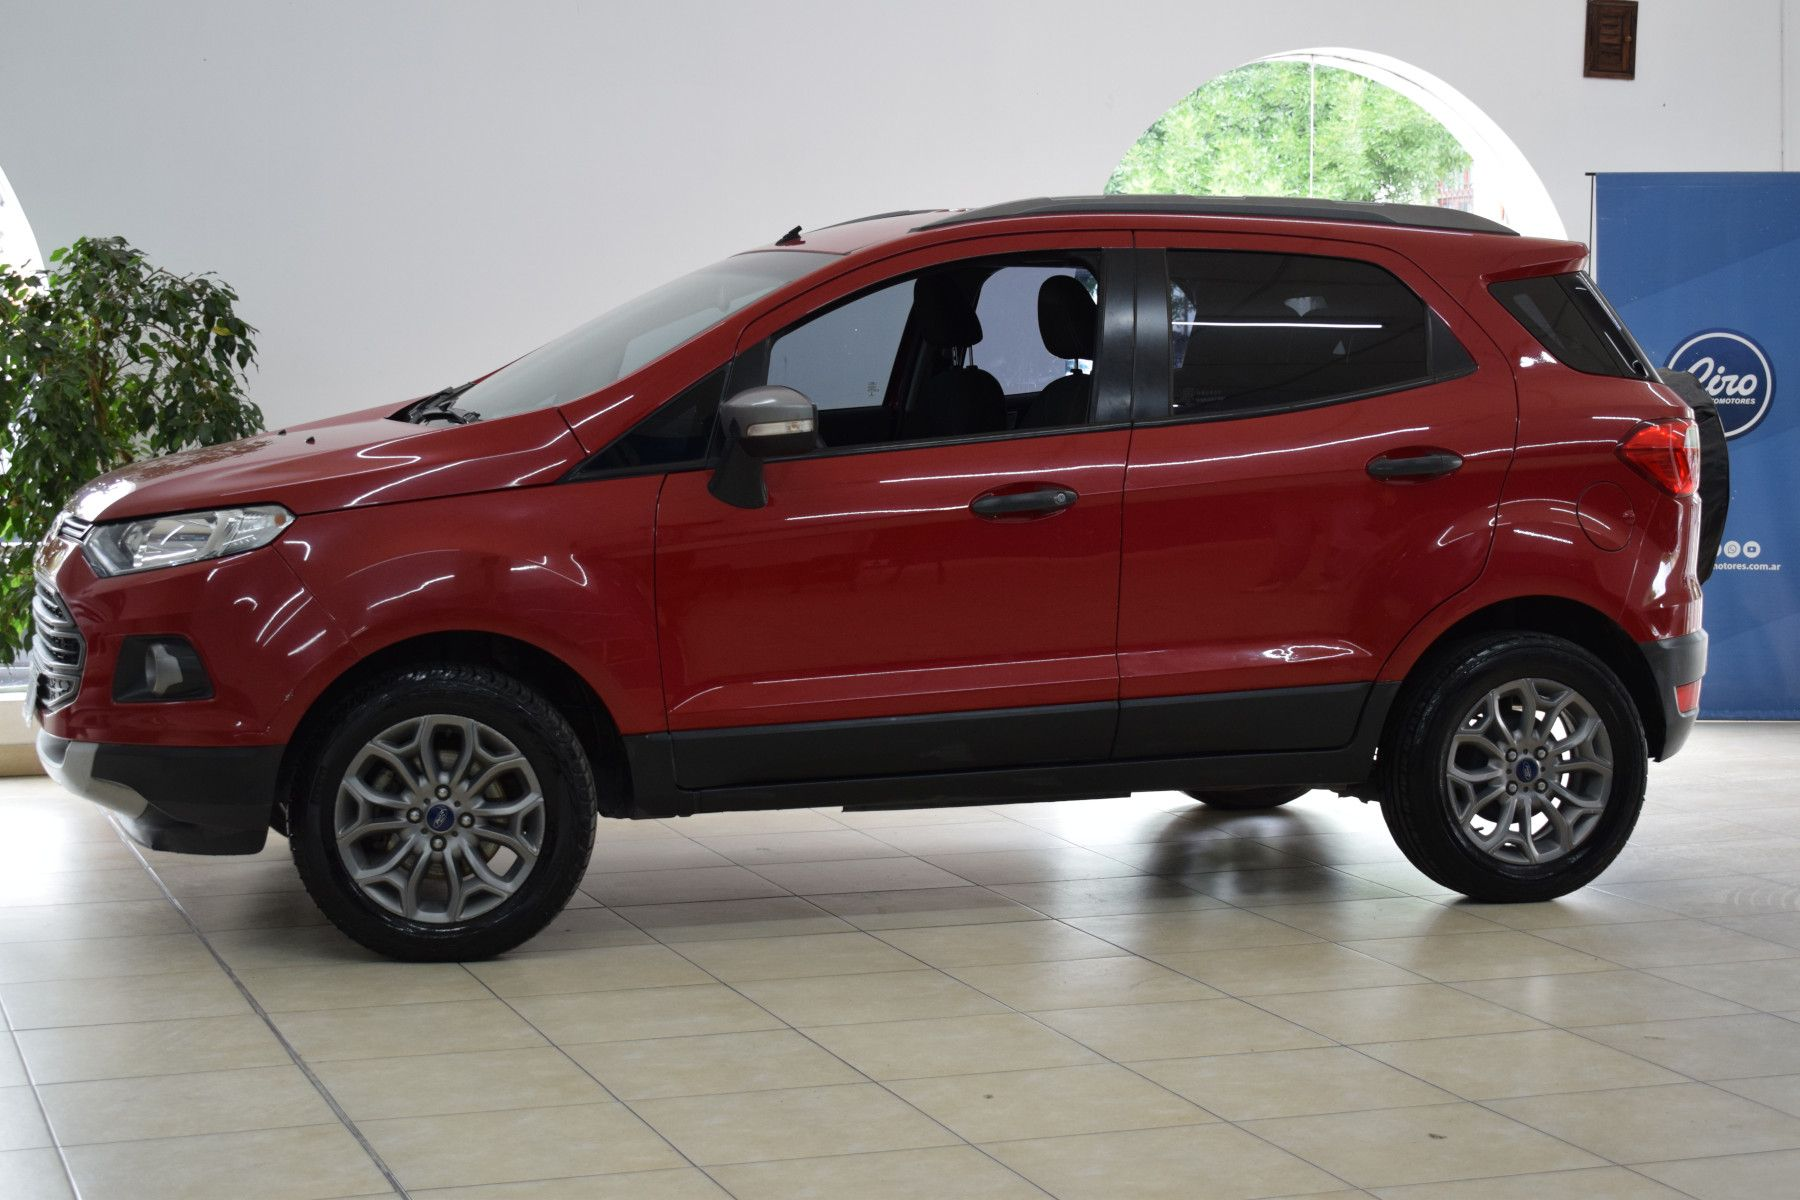 Ford ECO SPORT 1.6 FREESTYLE       L 13  7